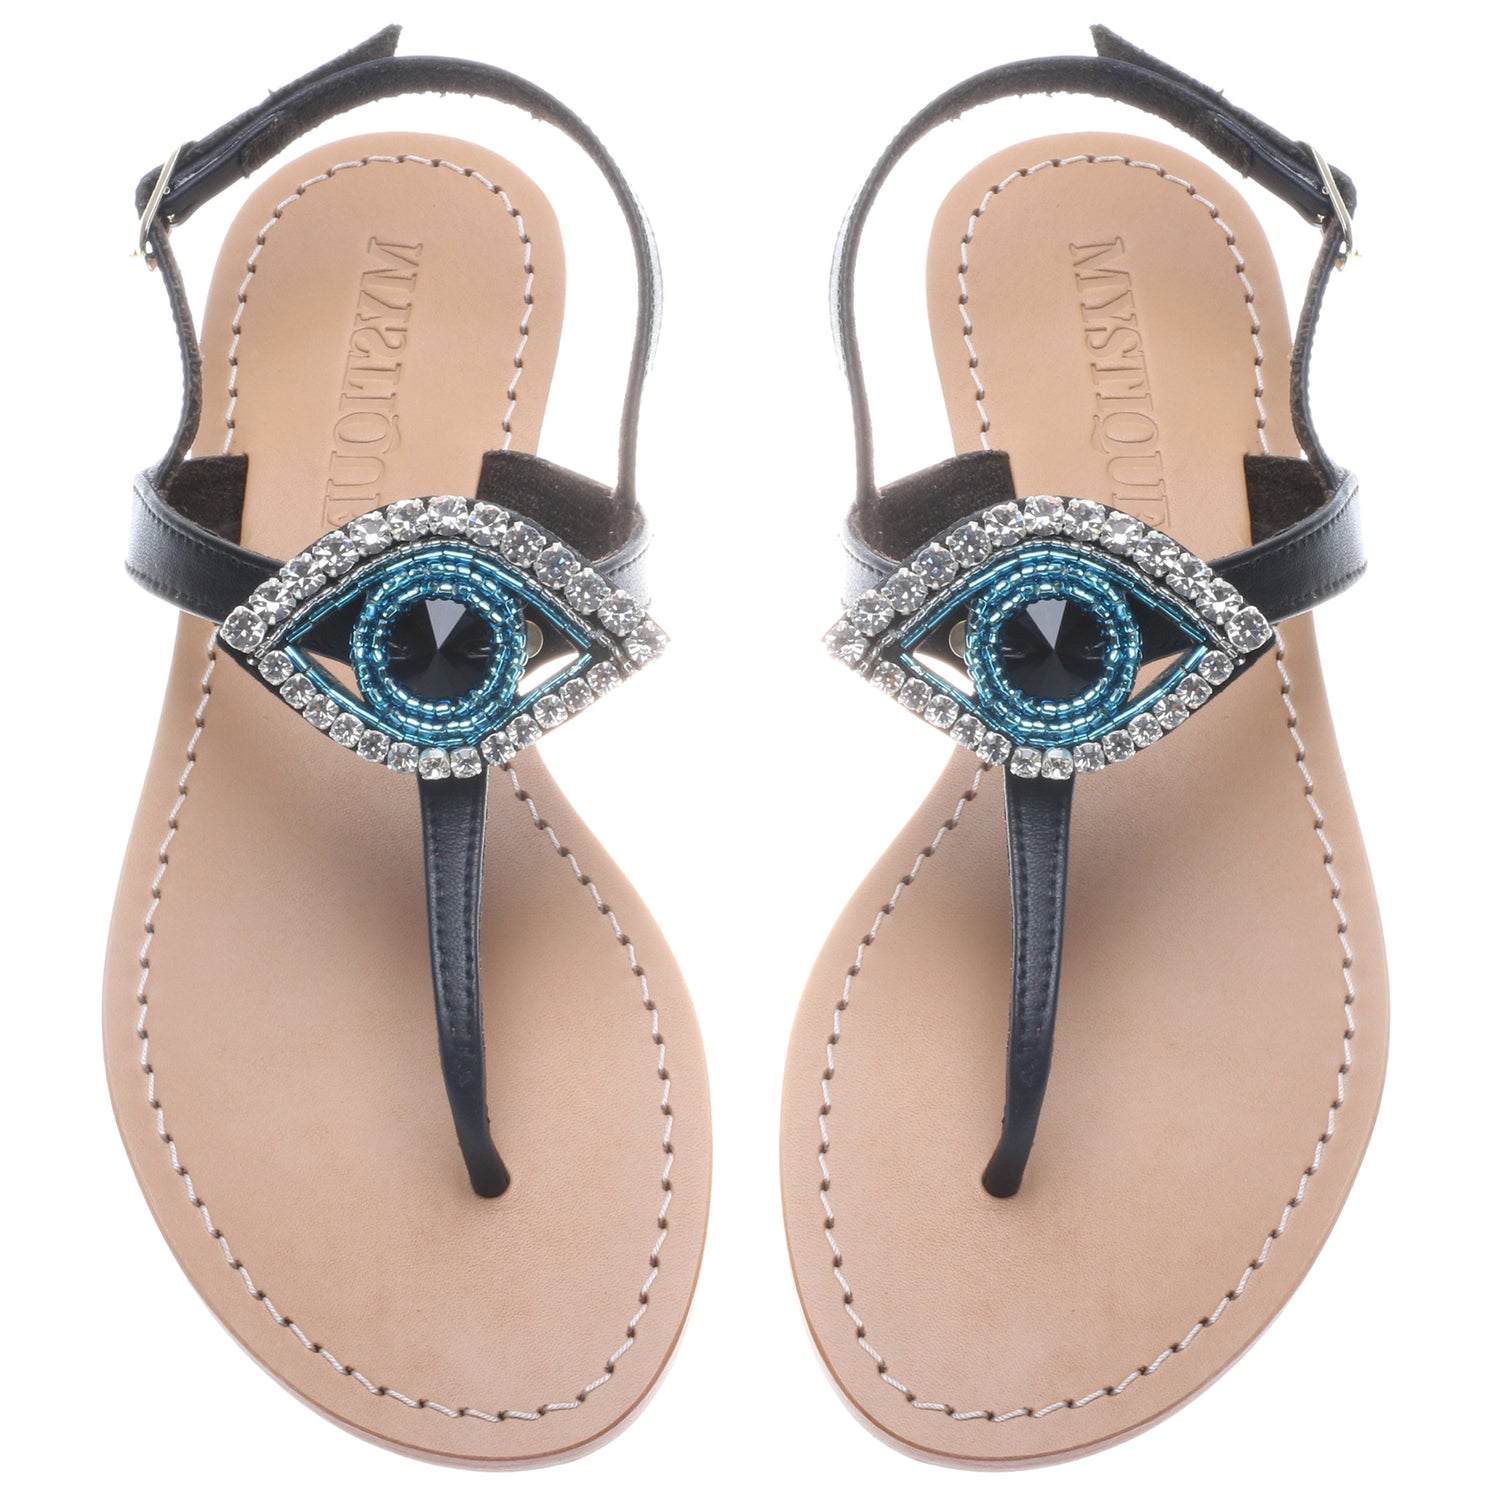 Blue Evil Eye - Mystique Sandals